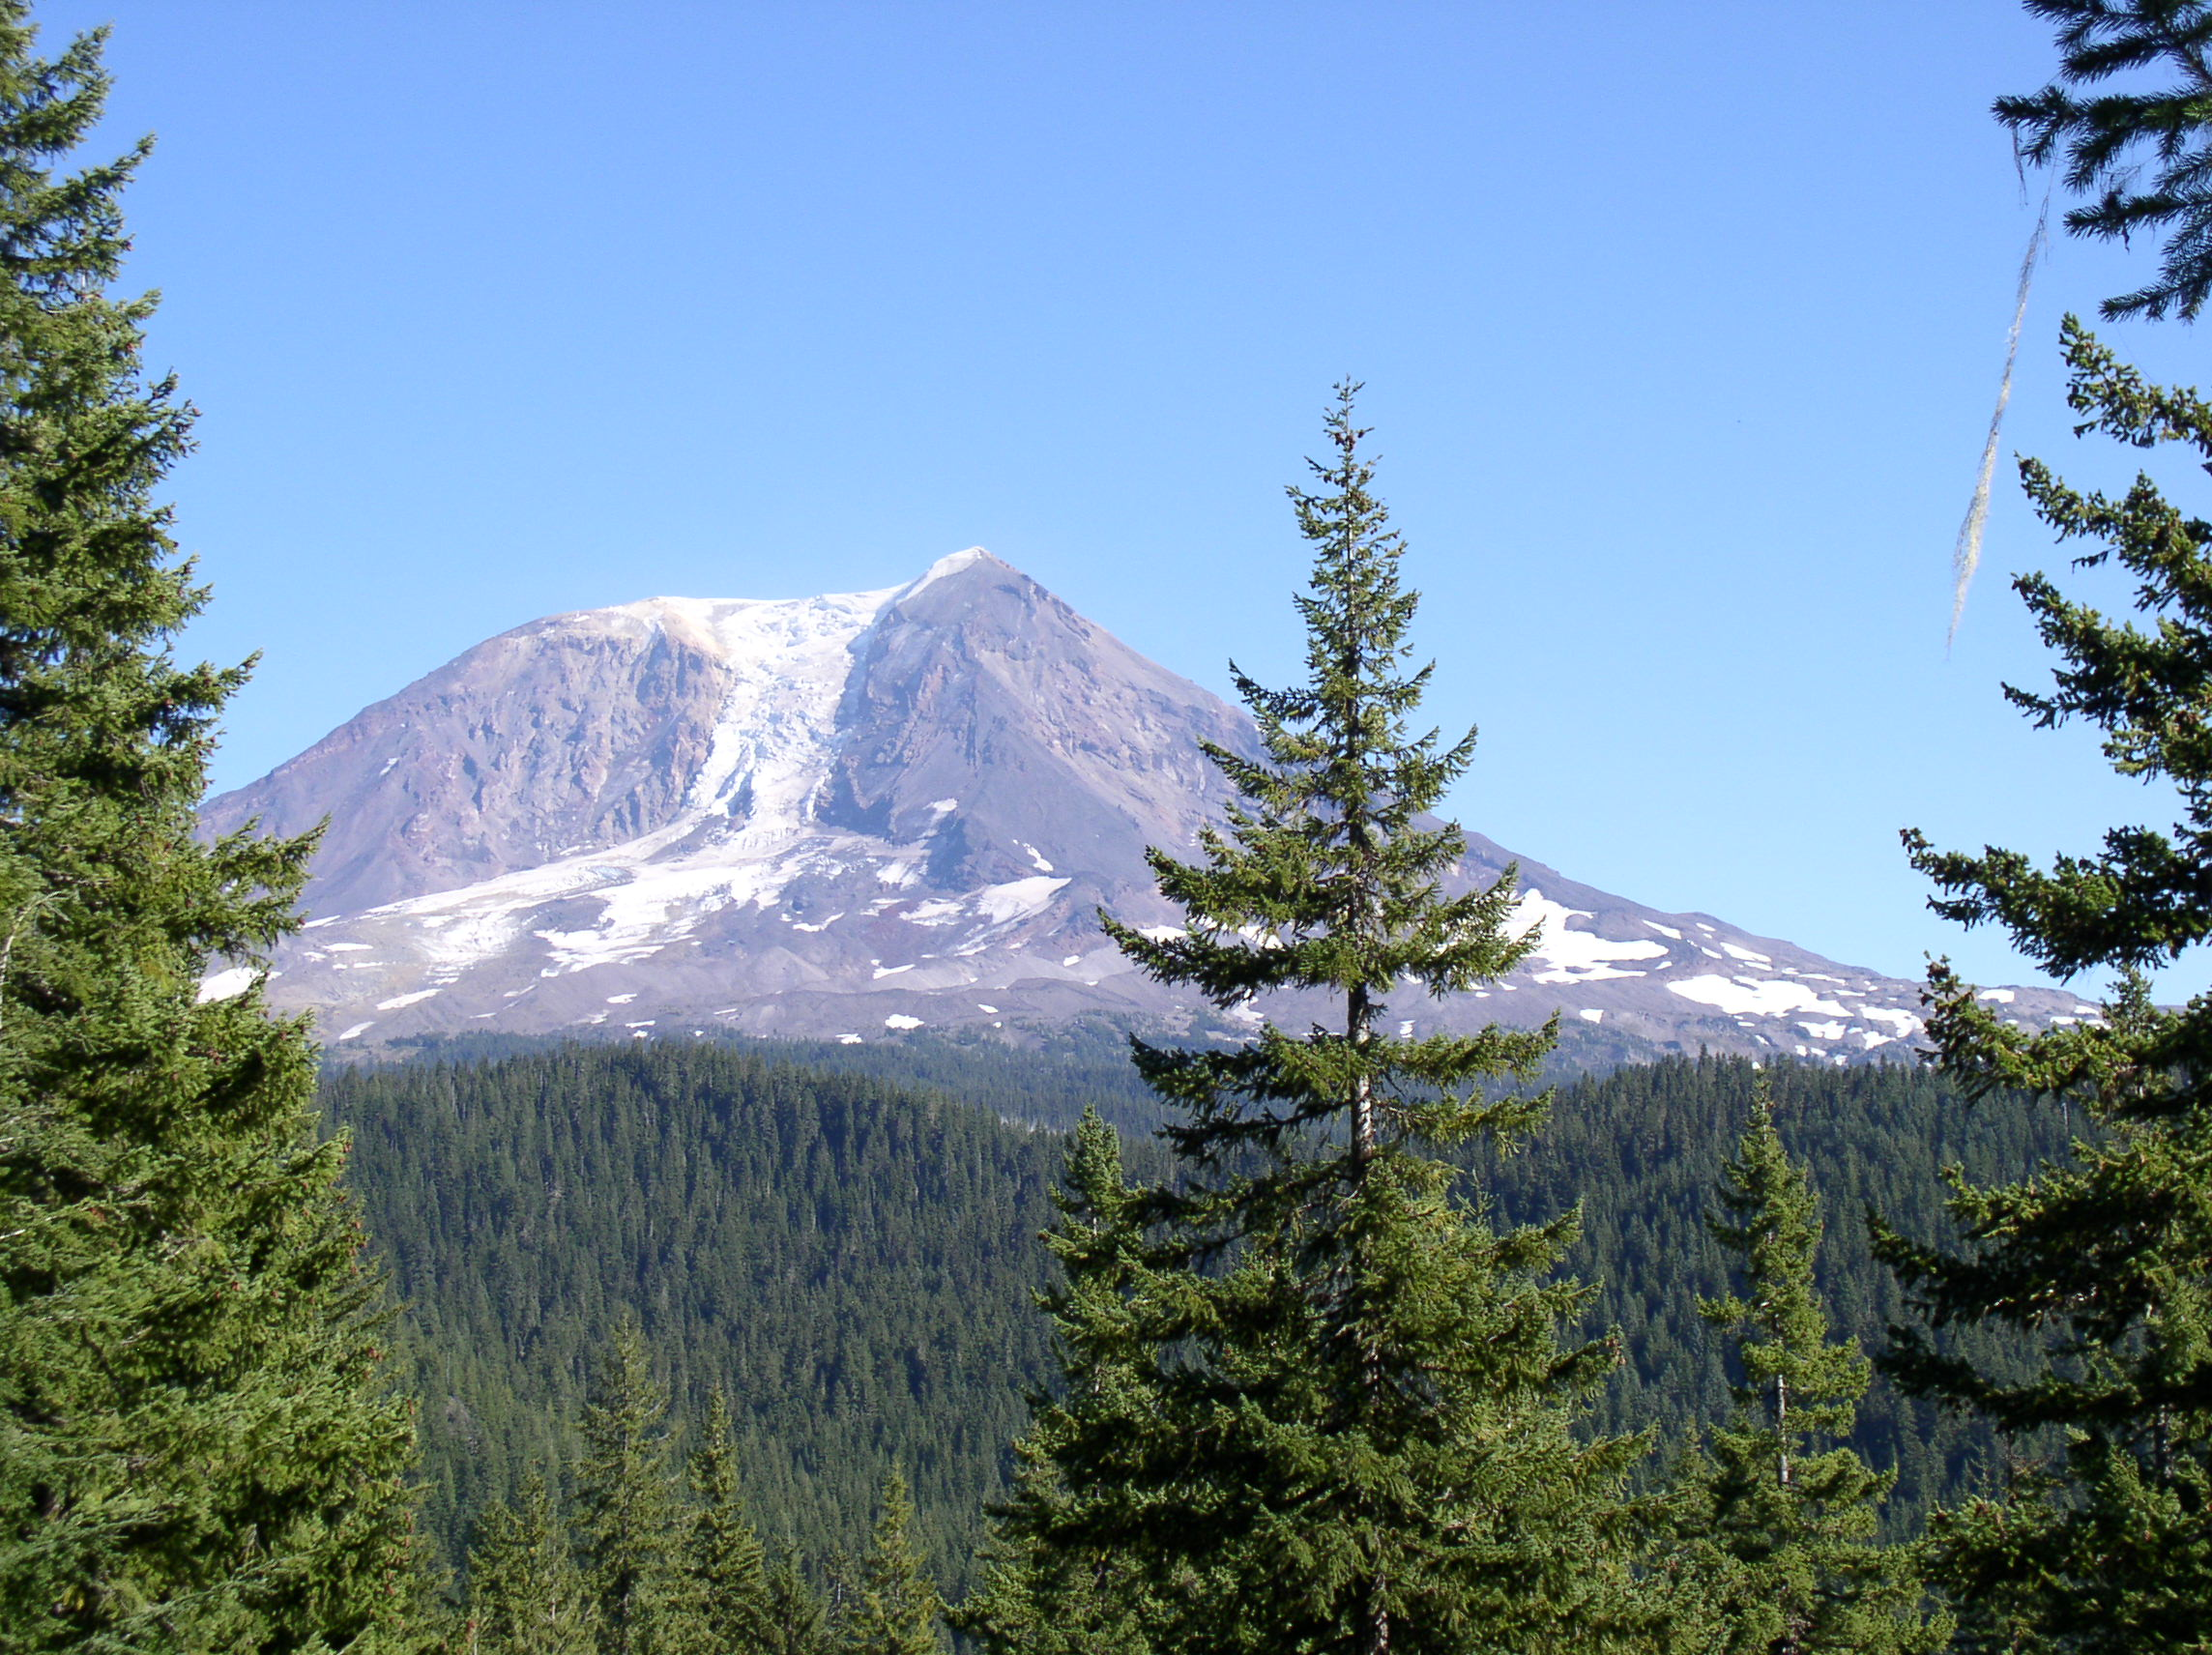 View of Mt. Adams, Cascade Mountains, from near elk camp.